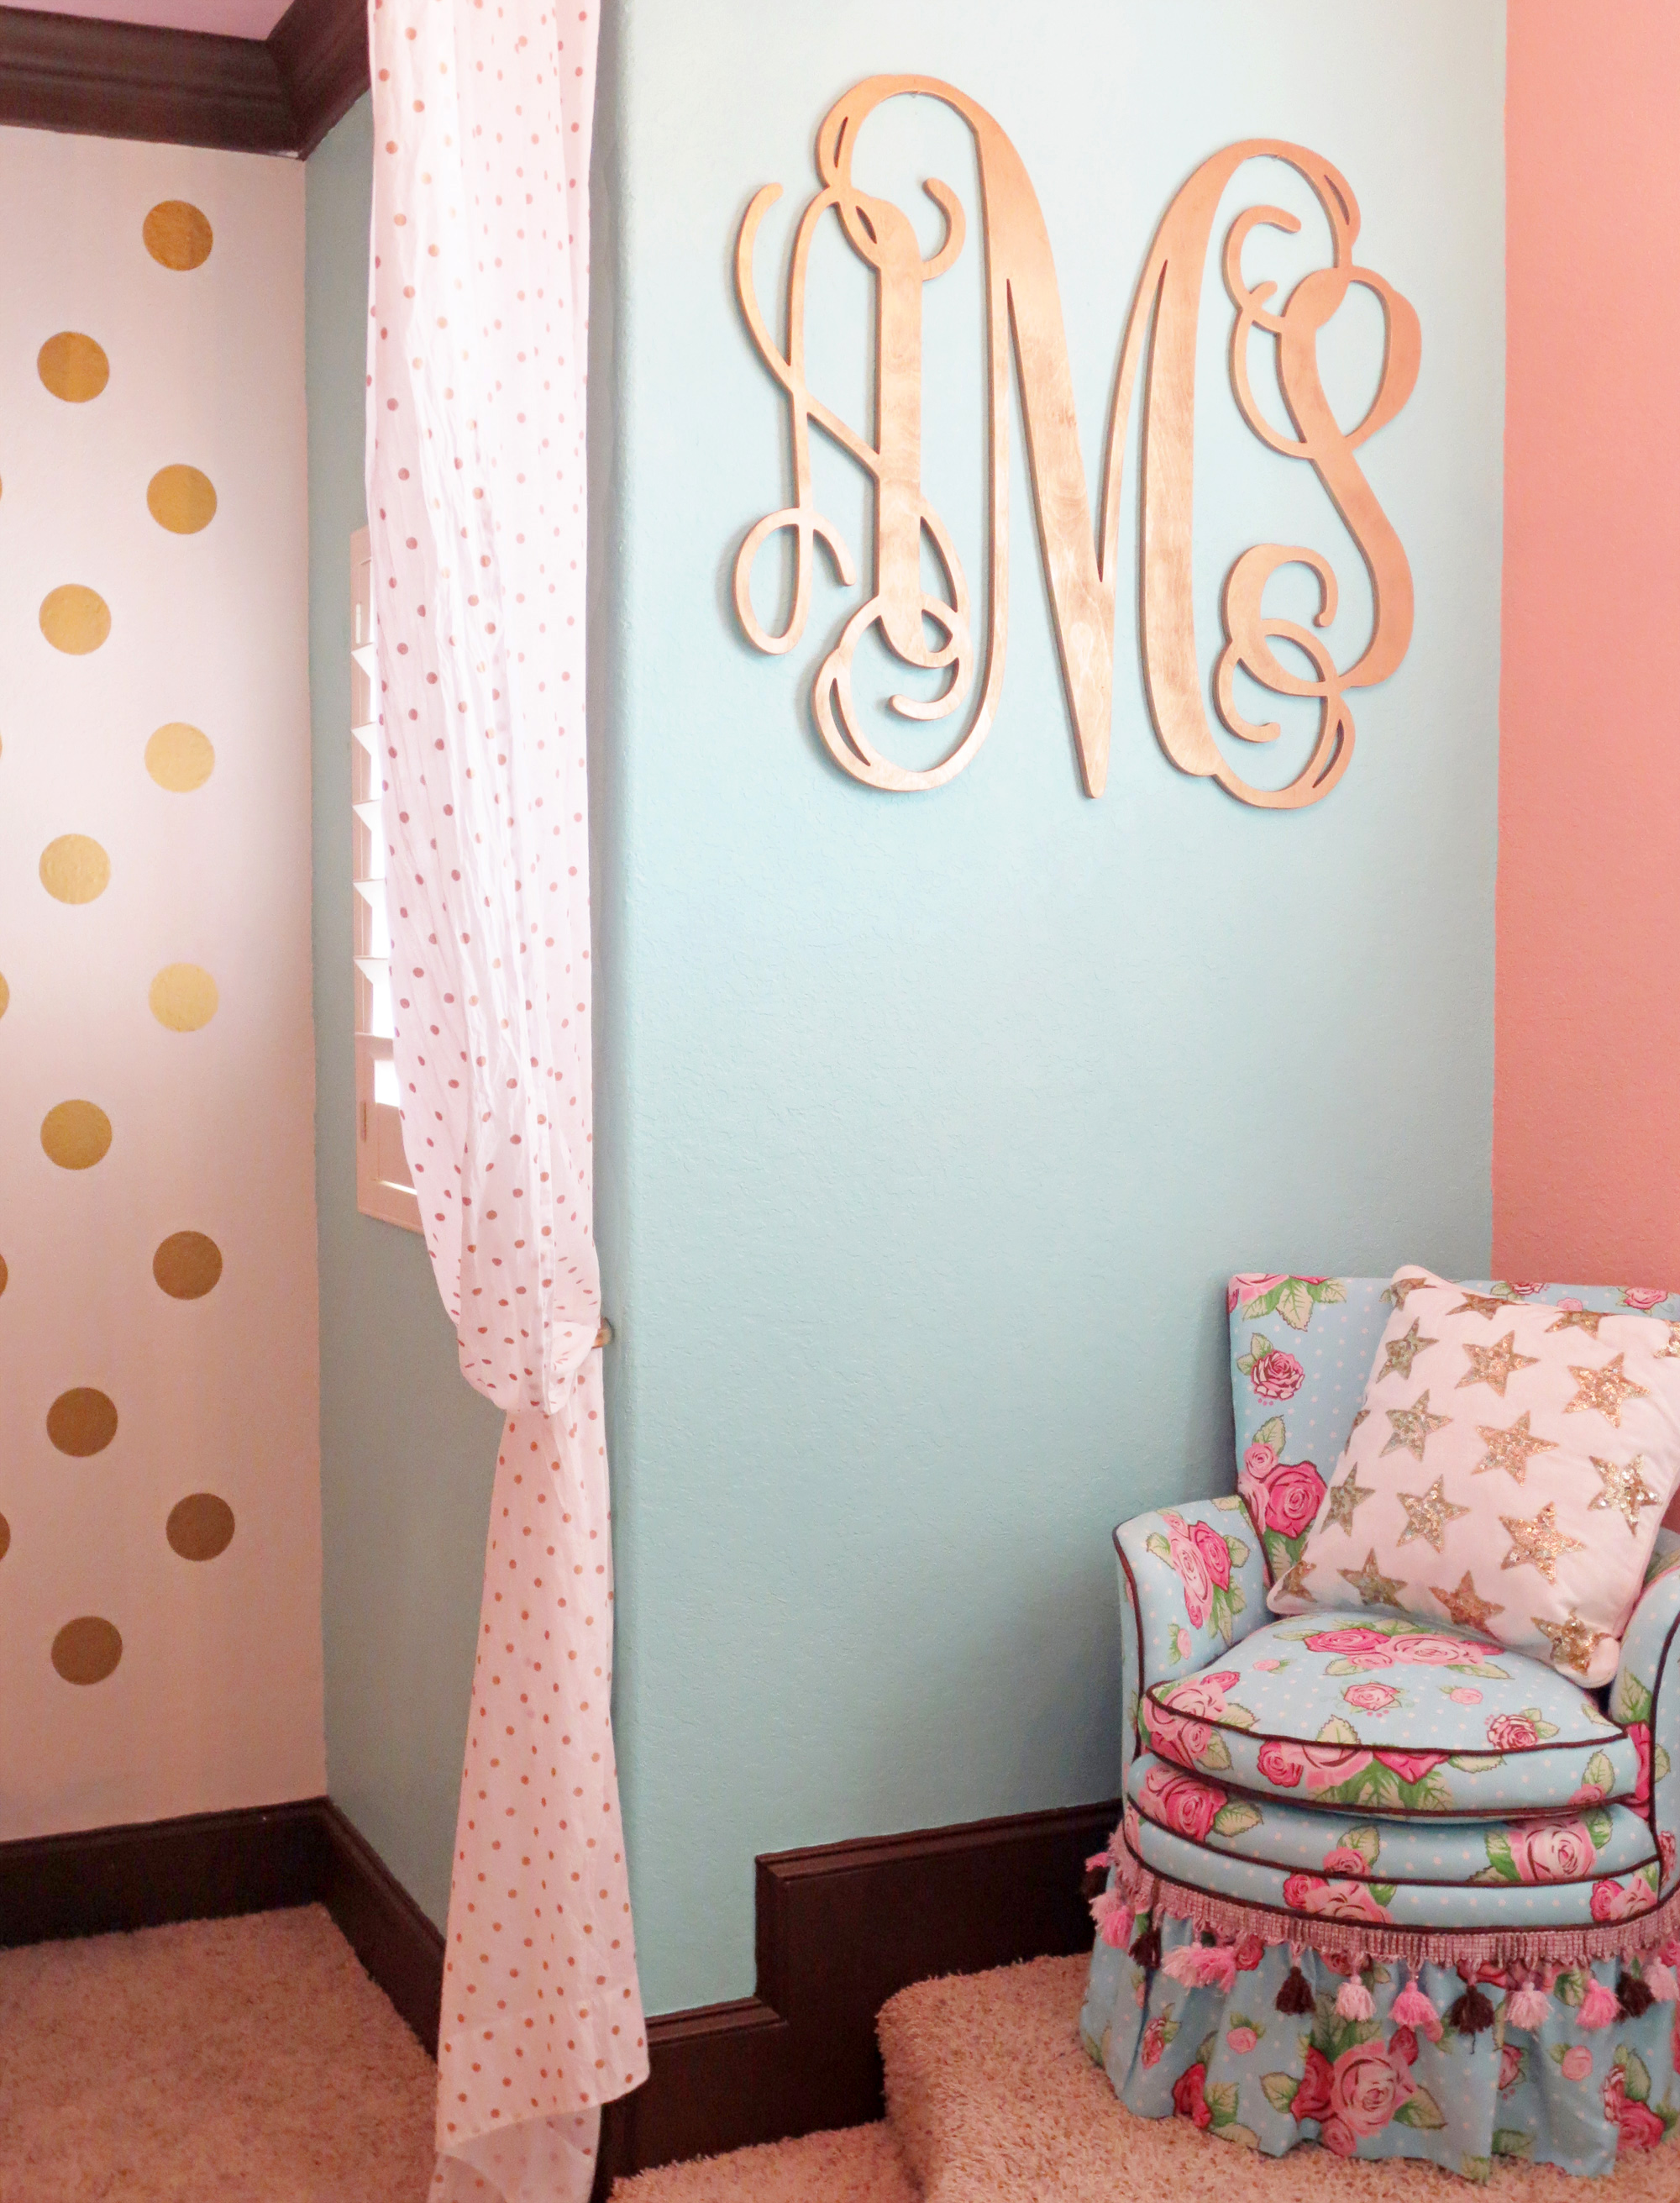 Oversized Gold Monogram - Project Nursery